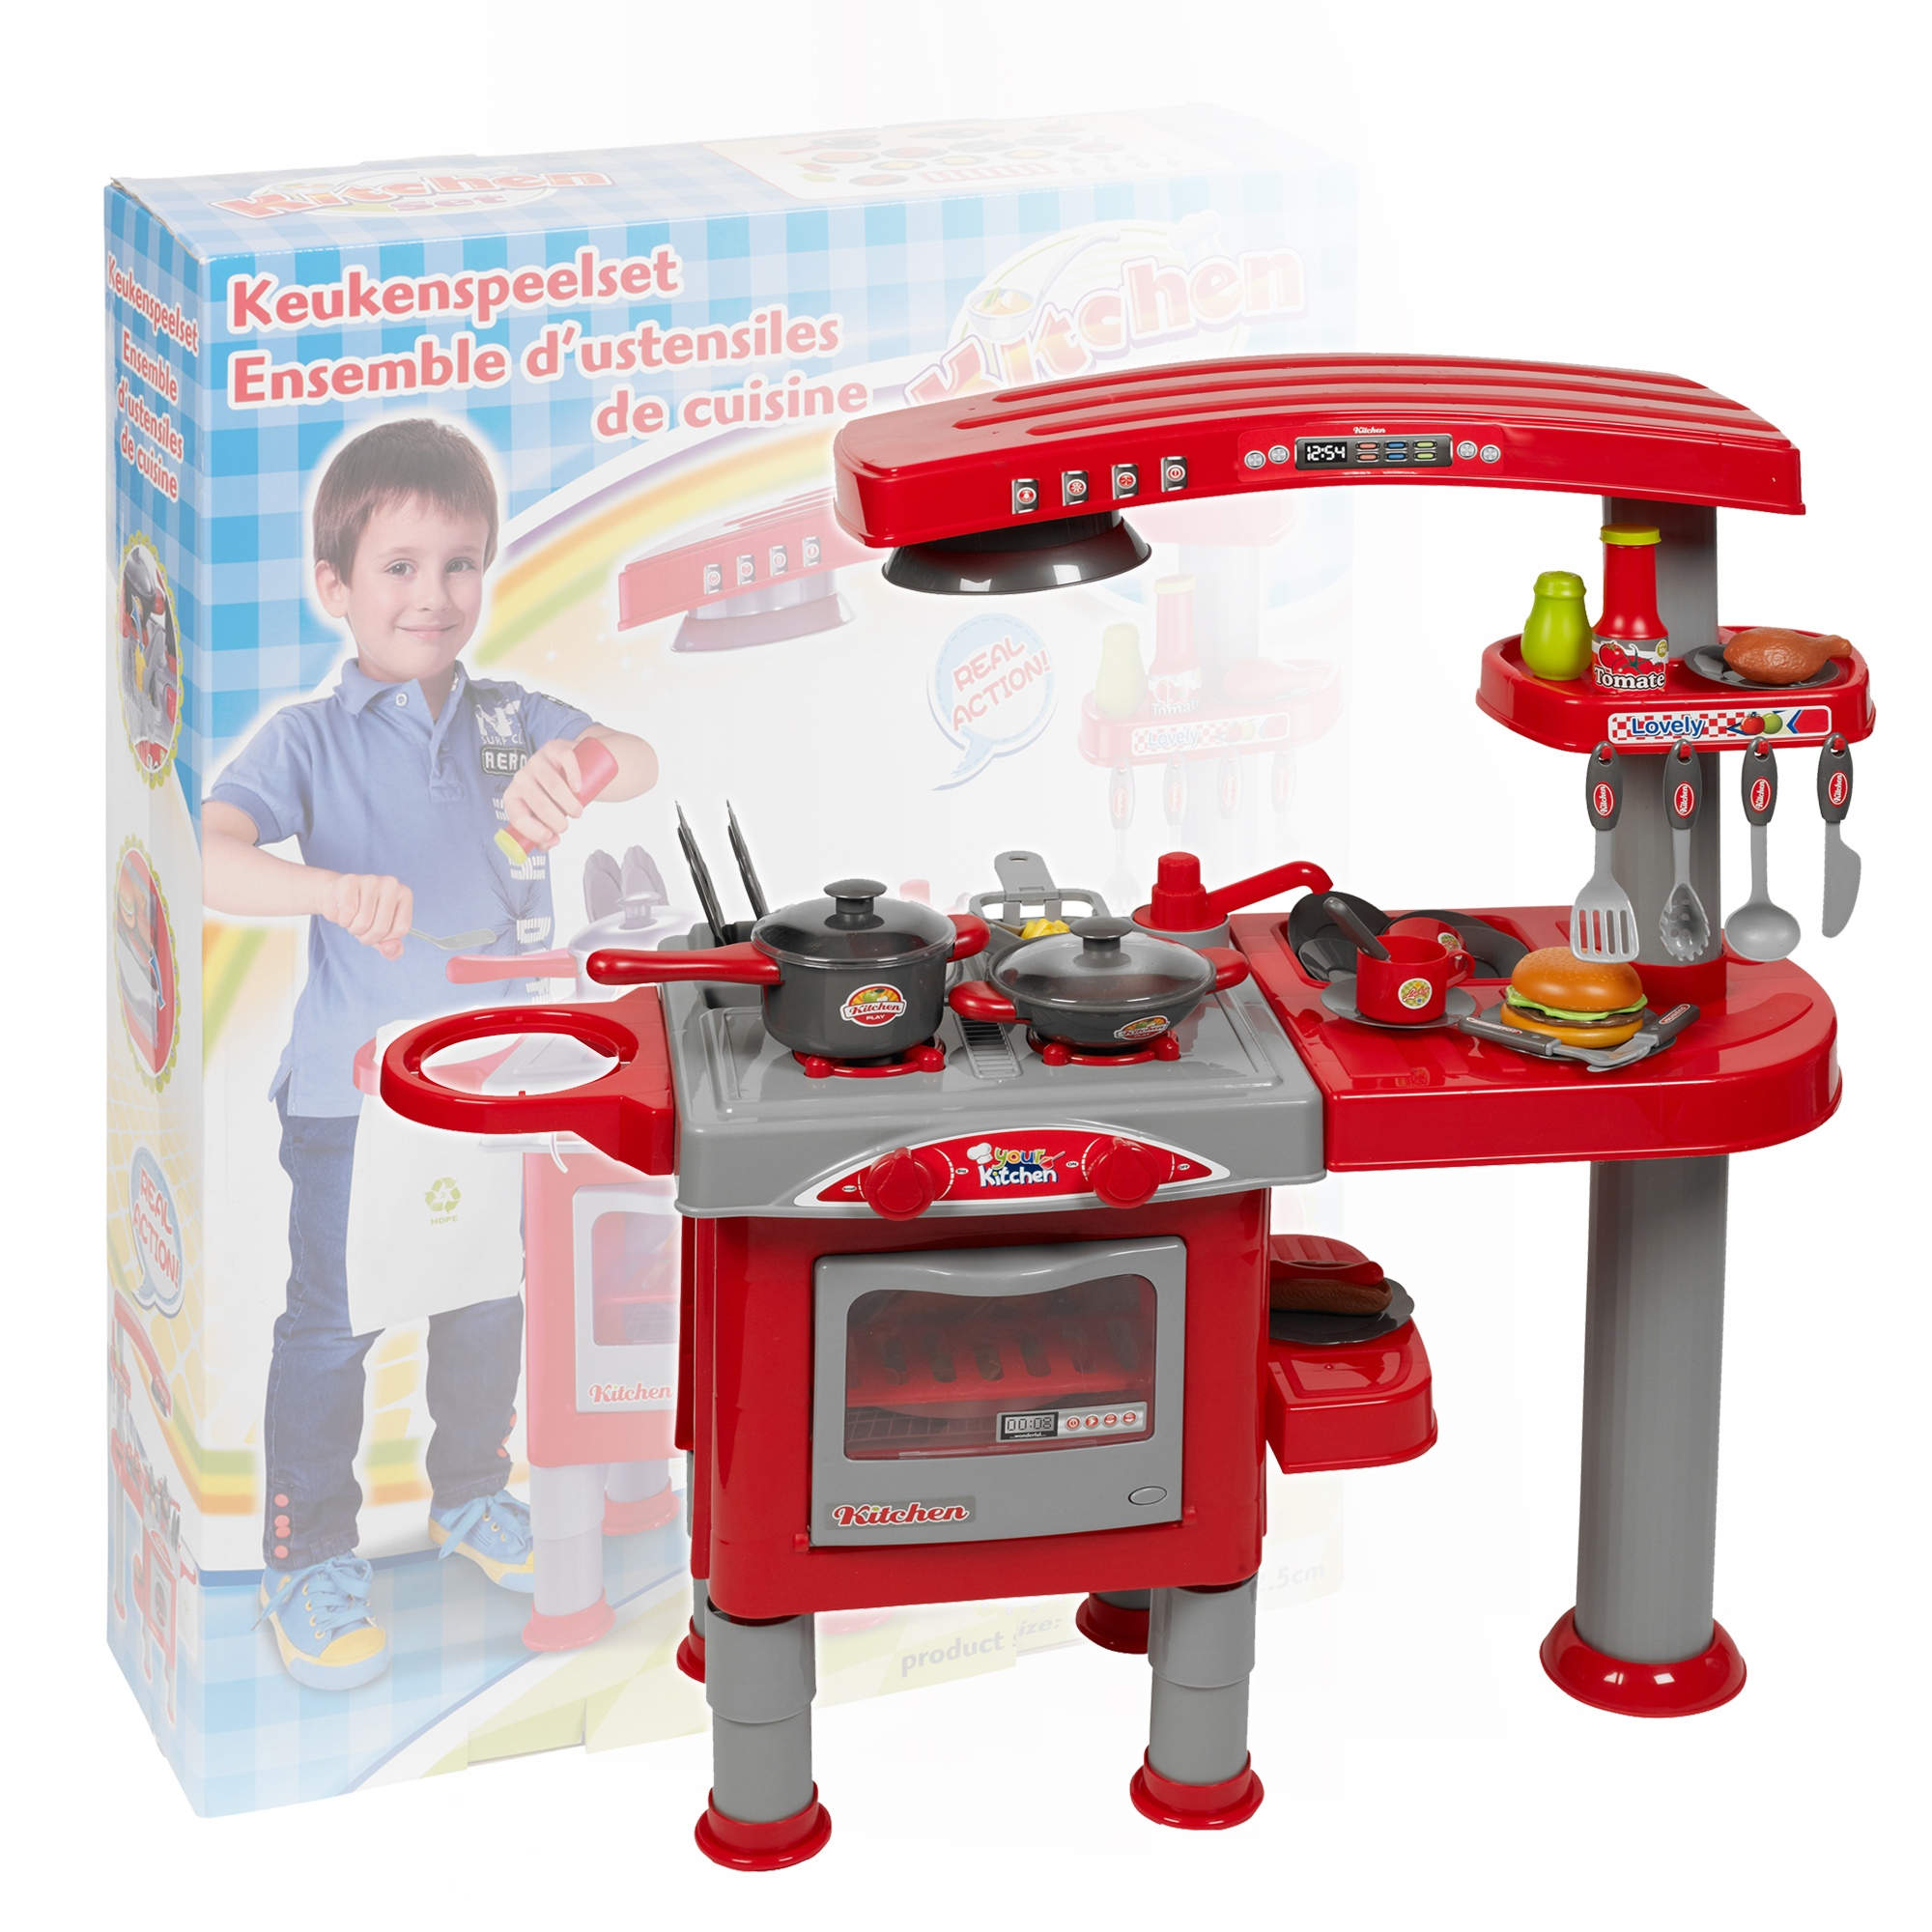 Cooking Toys For Boys : Piece kitchen cooking children s play set toy boys